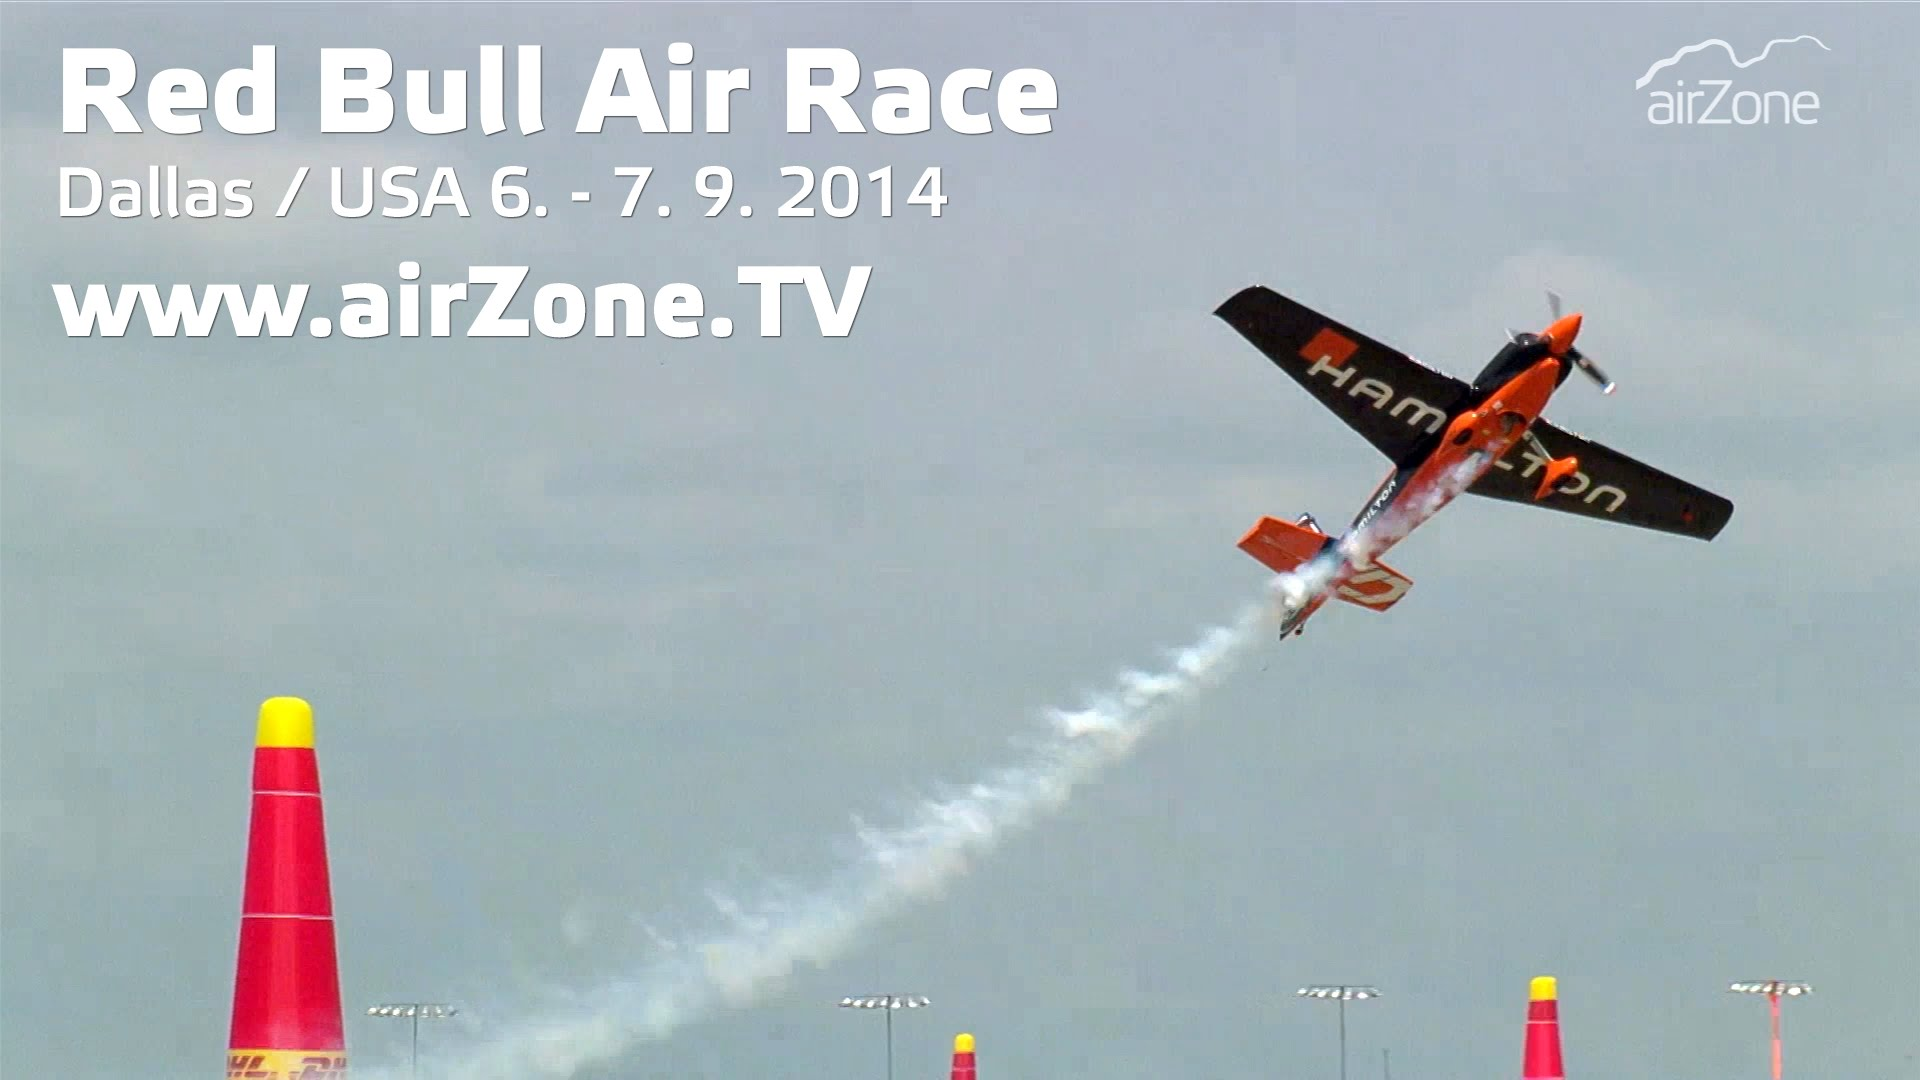 airZone-TV – 8. 9. 2014 – Red Bull Air Race – Dallas, USA (6. – 7. 9. 2014)